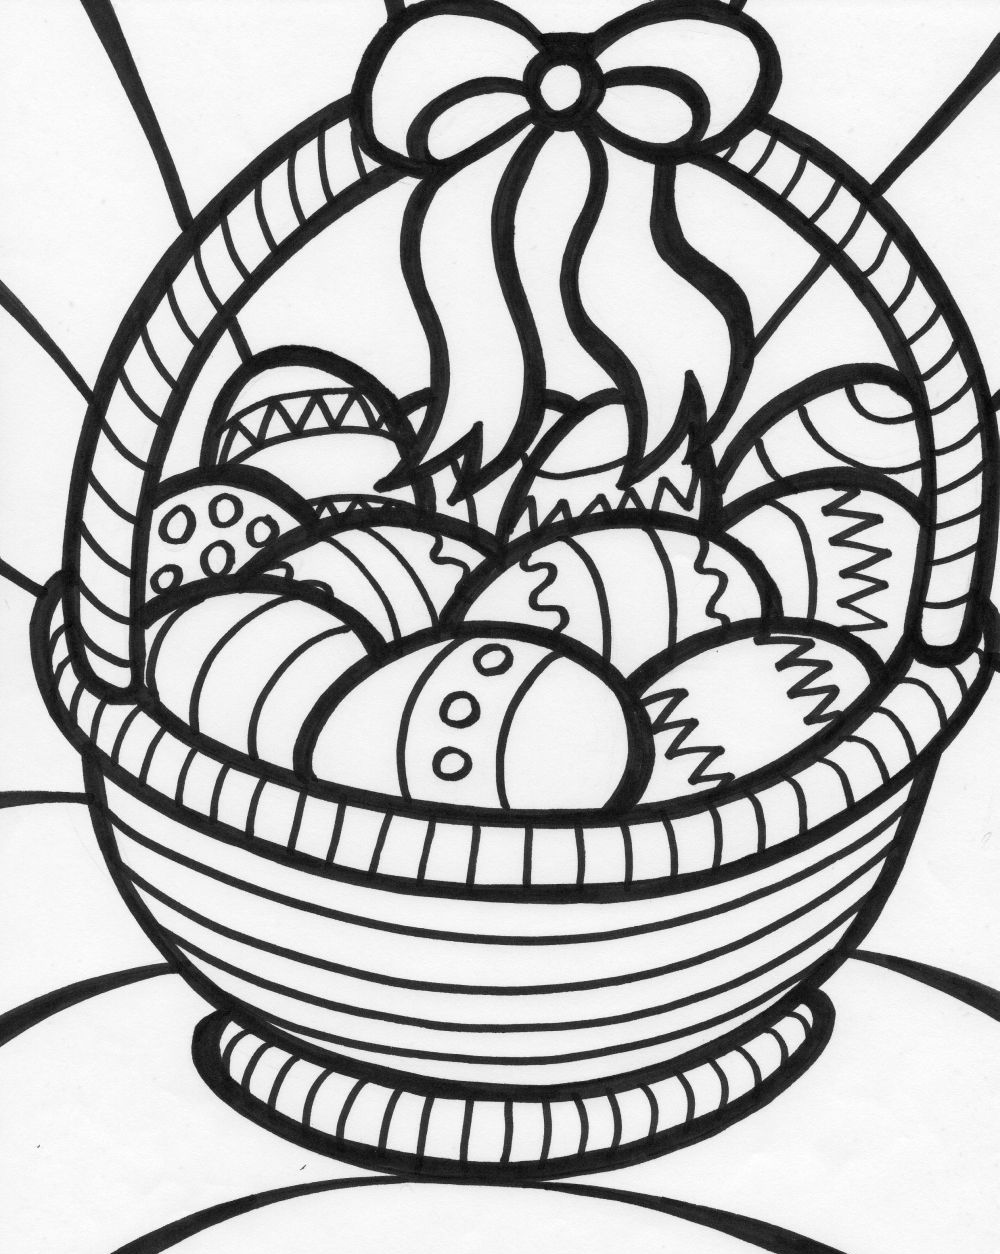 easter basket coloring pages to print empty easter basket coloring page in 2020 easter basket coloring print to pages easter basket